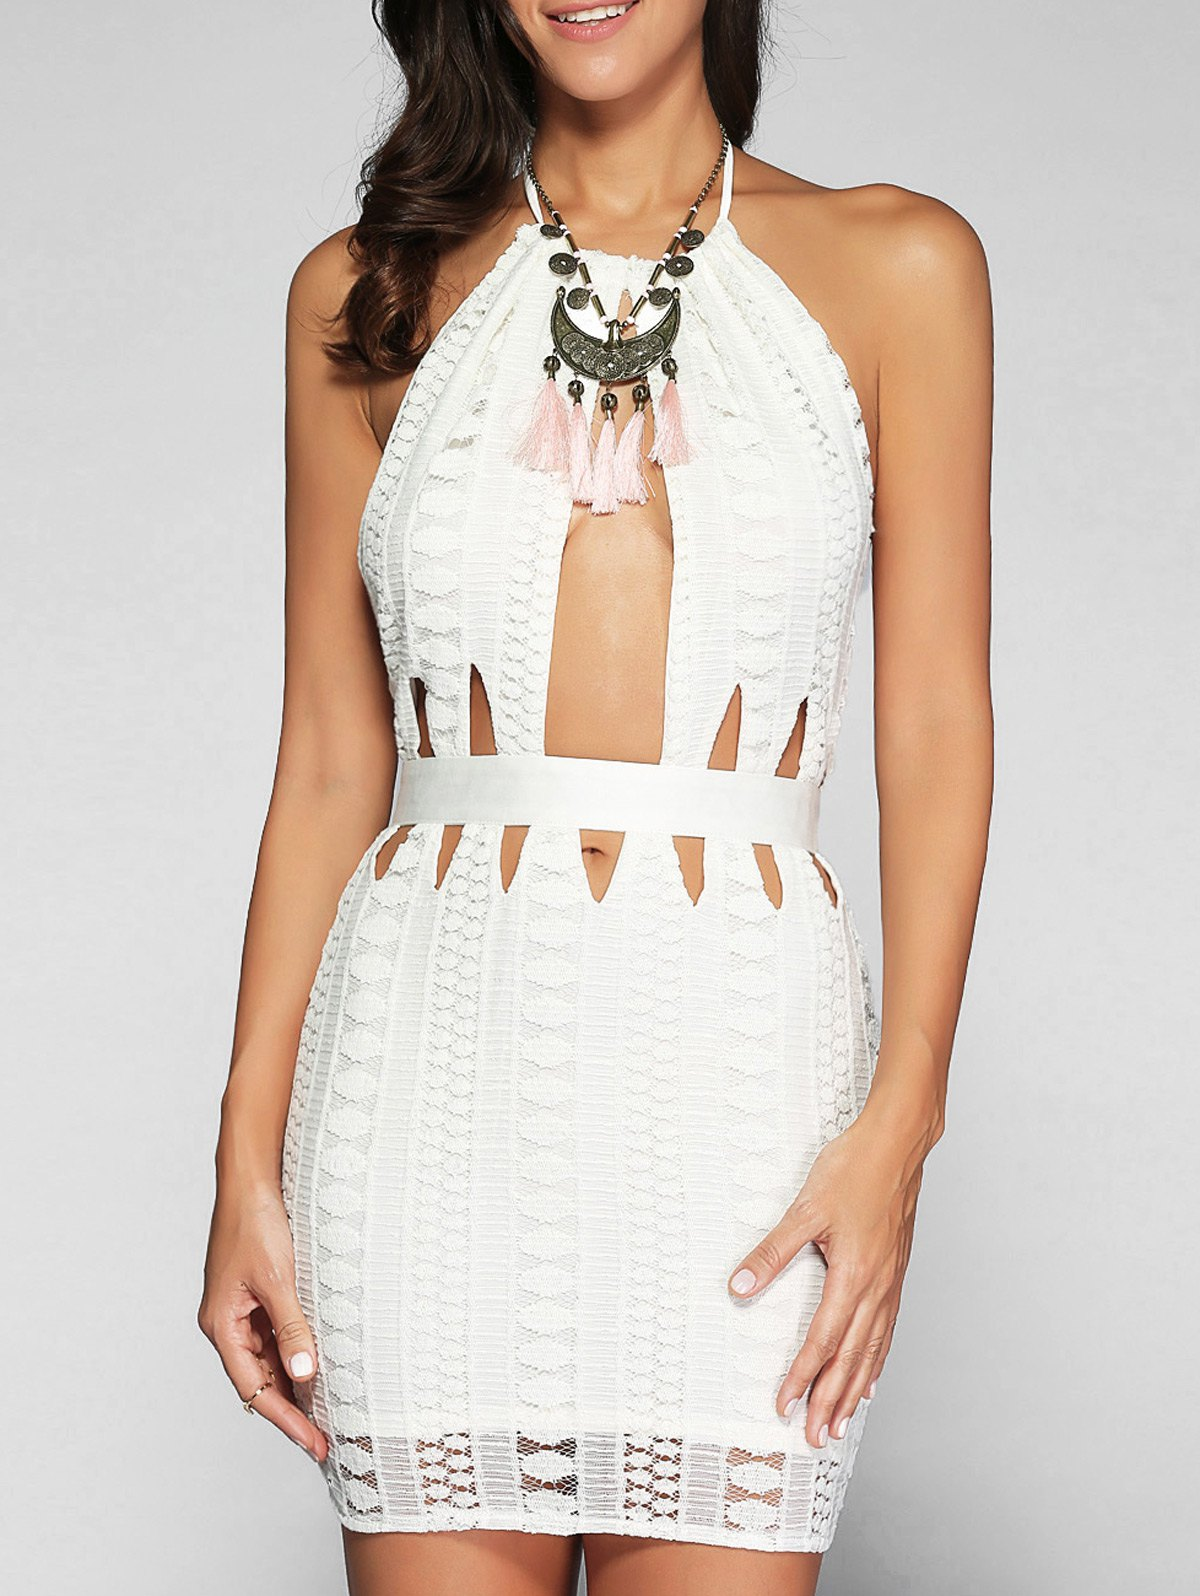 Backless Cutout Dress